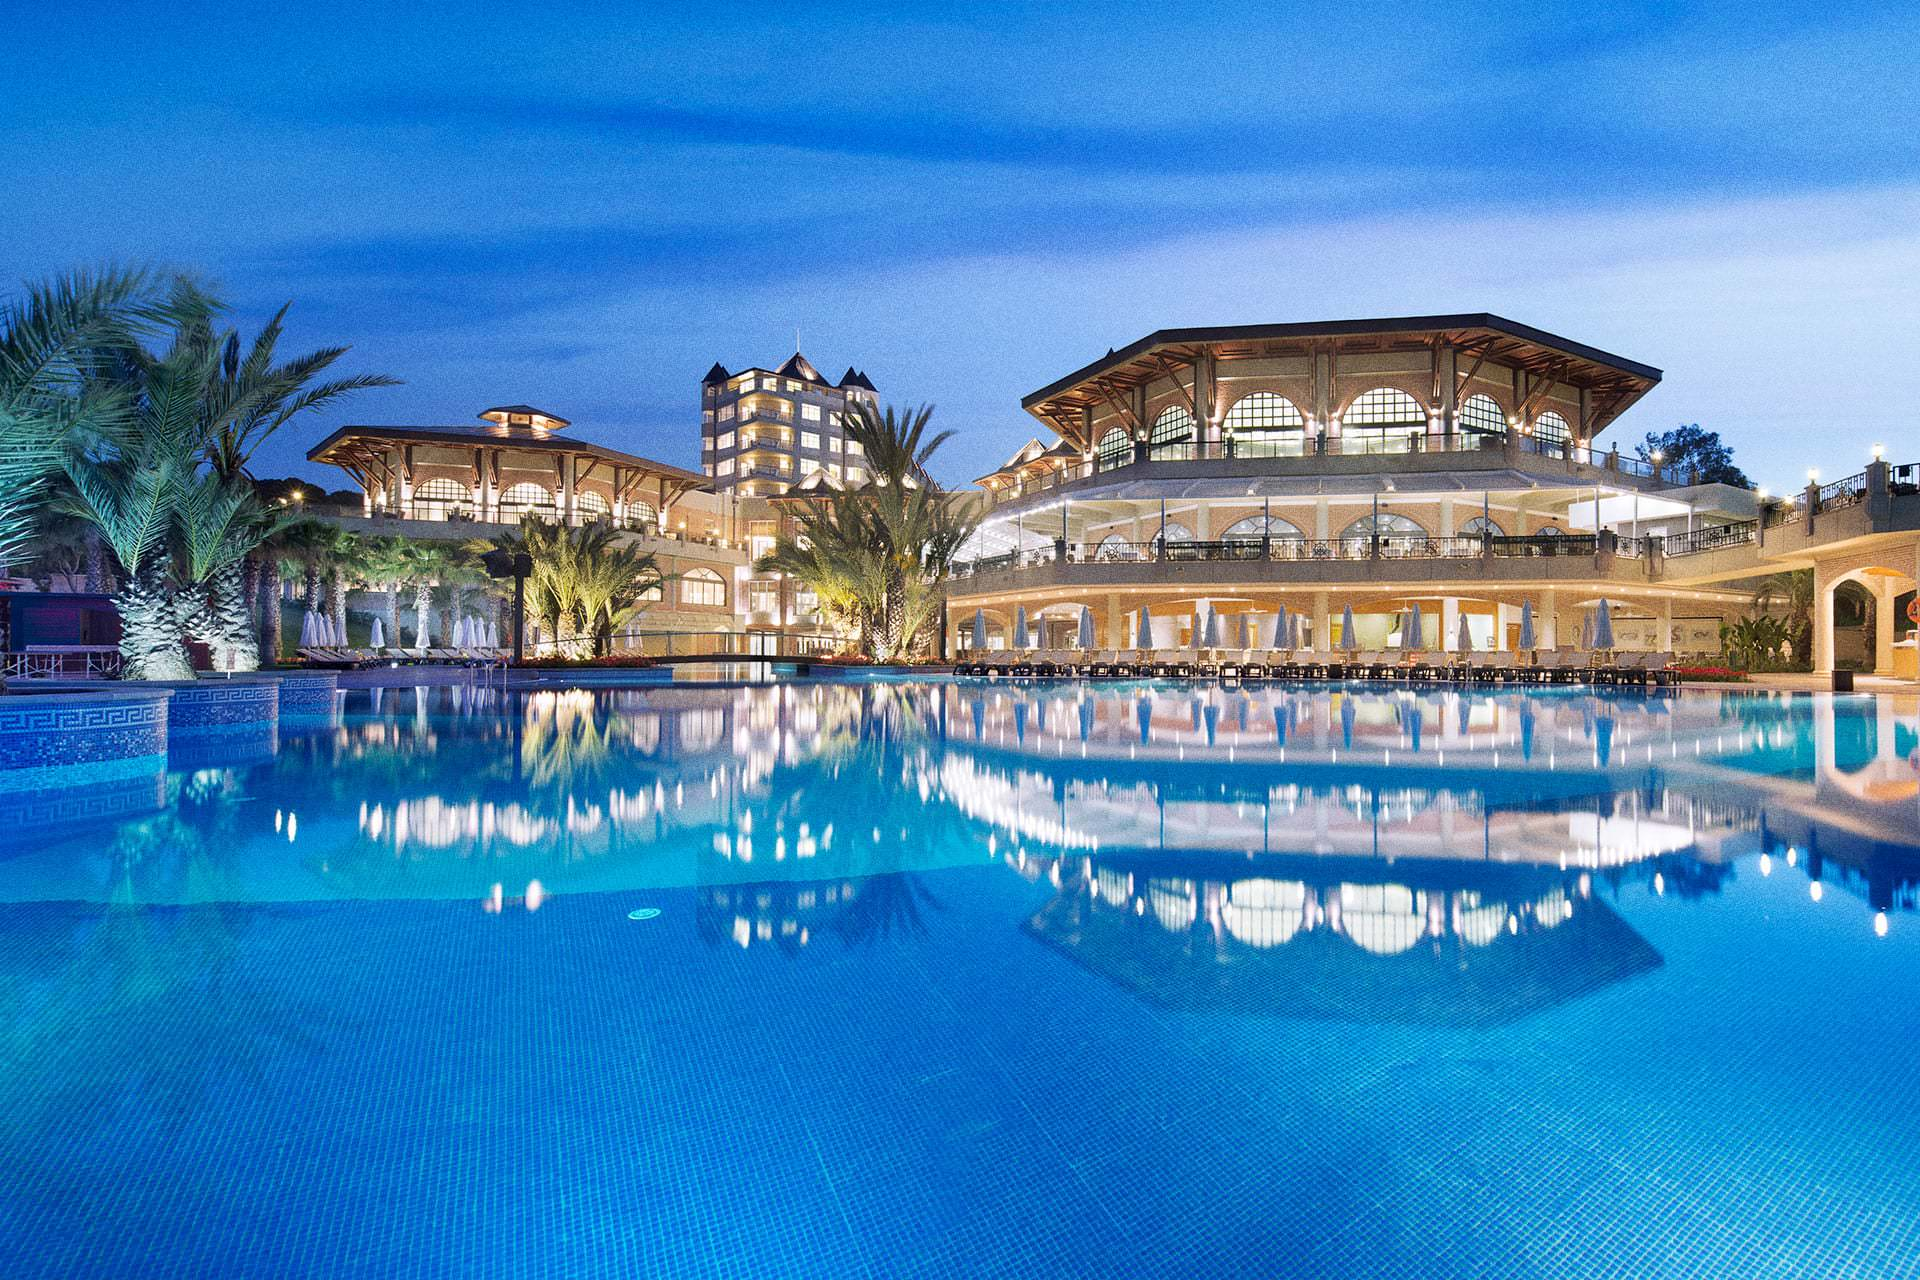 Hotel Papillon Zeugma 5* - High Class All Inclusive - Papillon zeugma belek entertainment